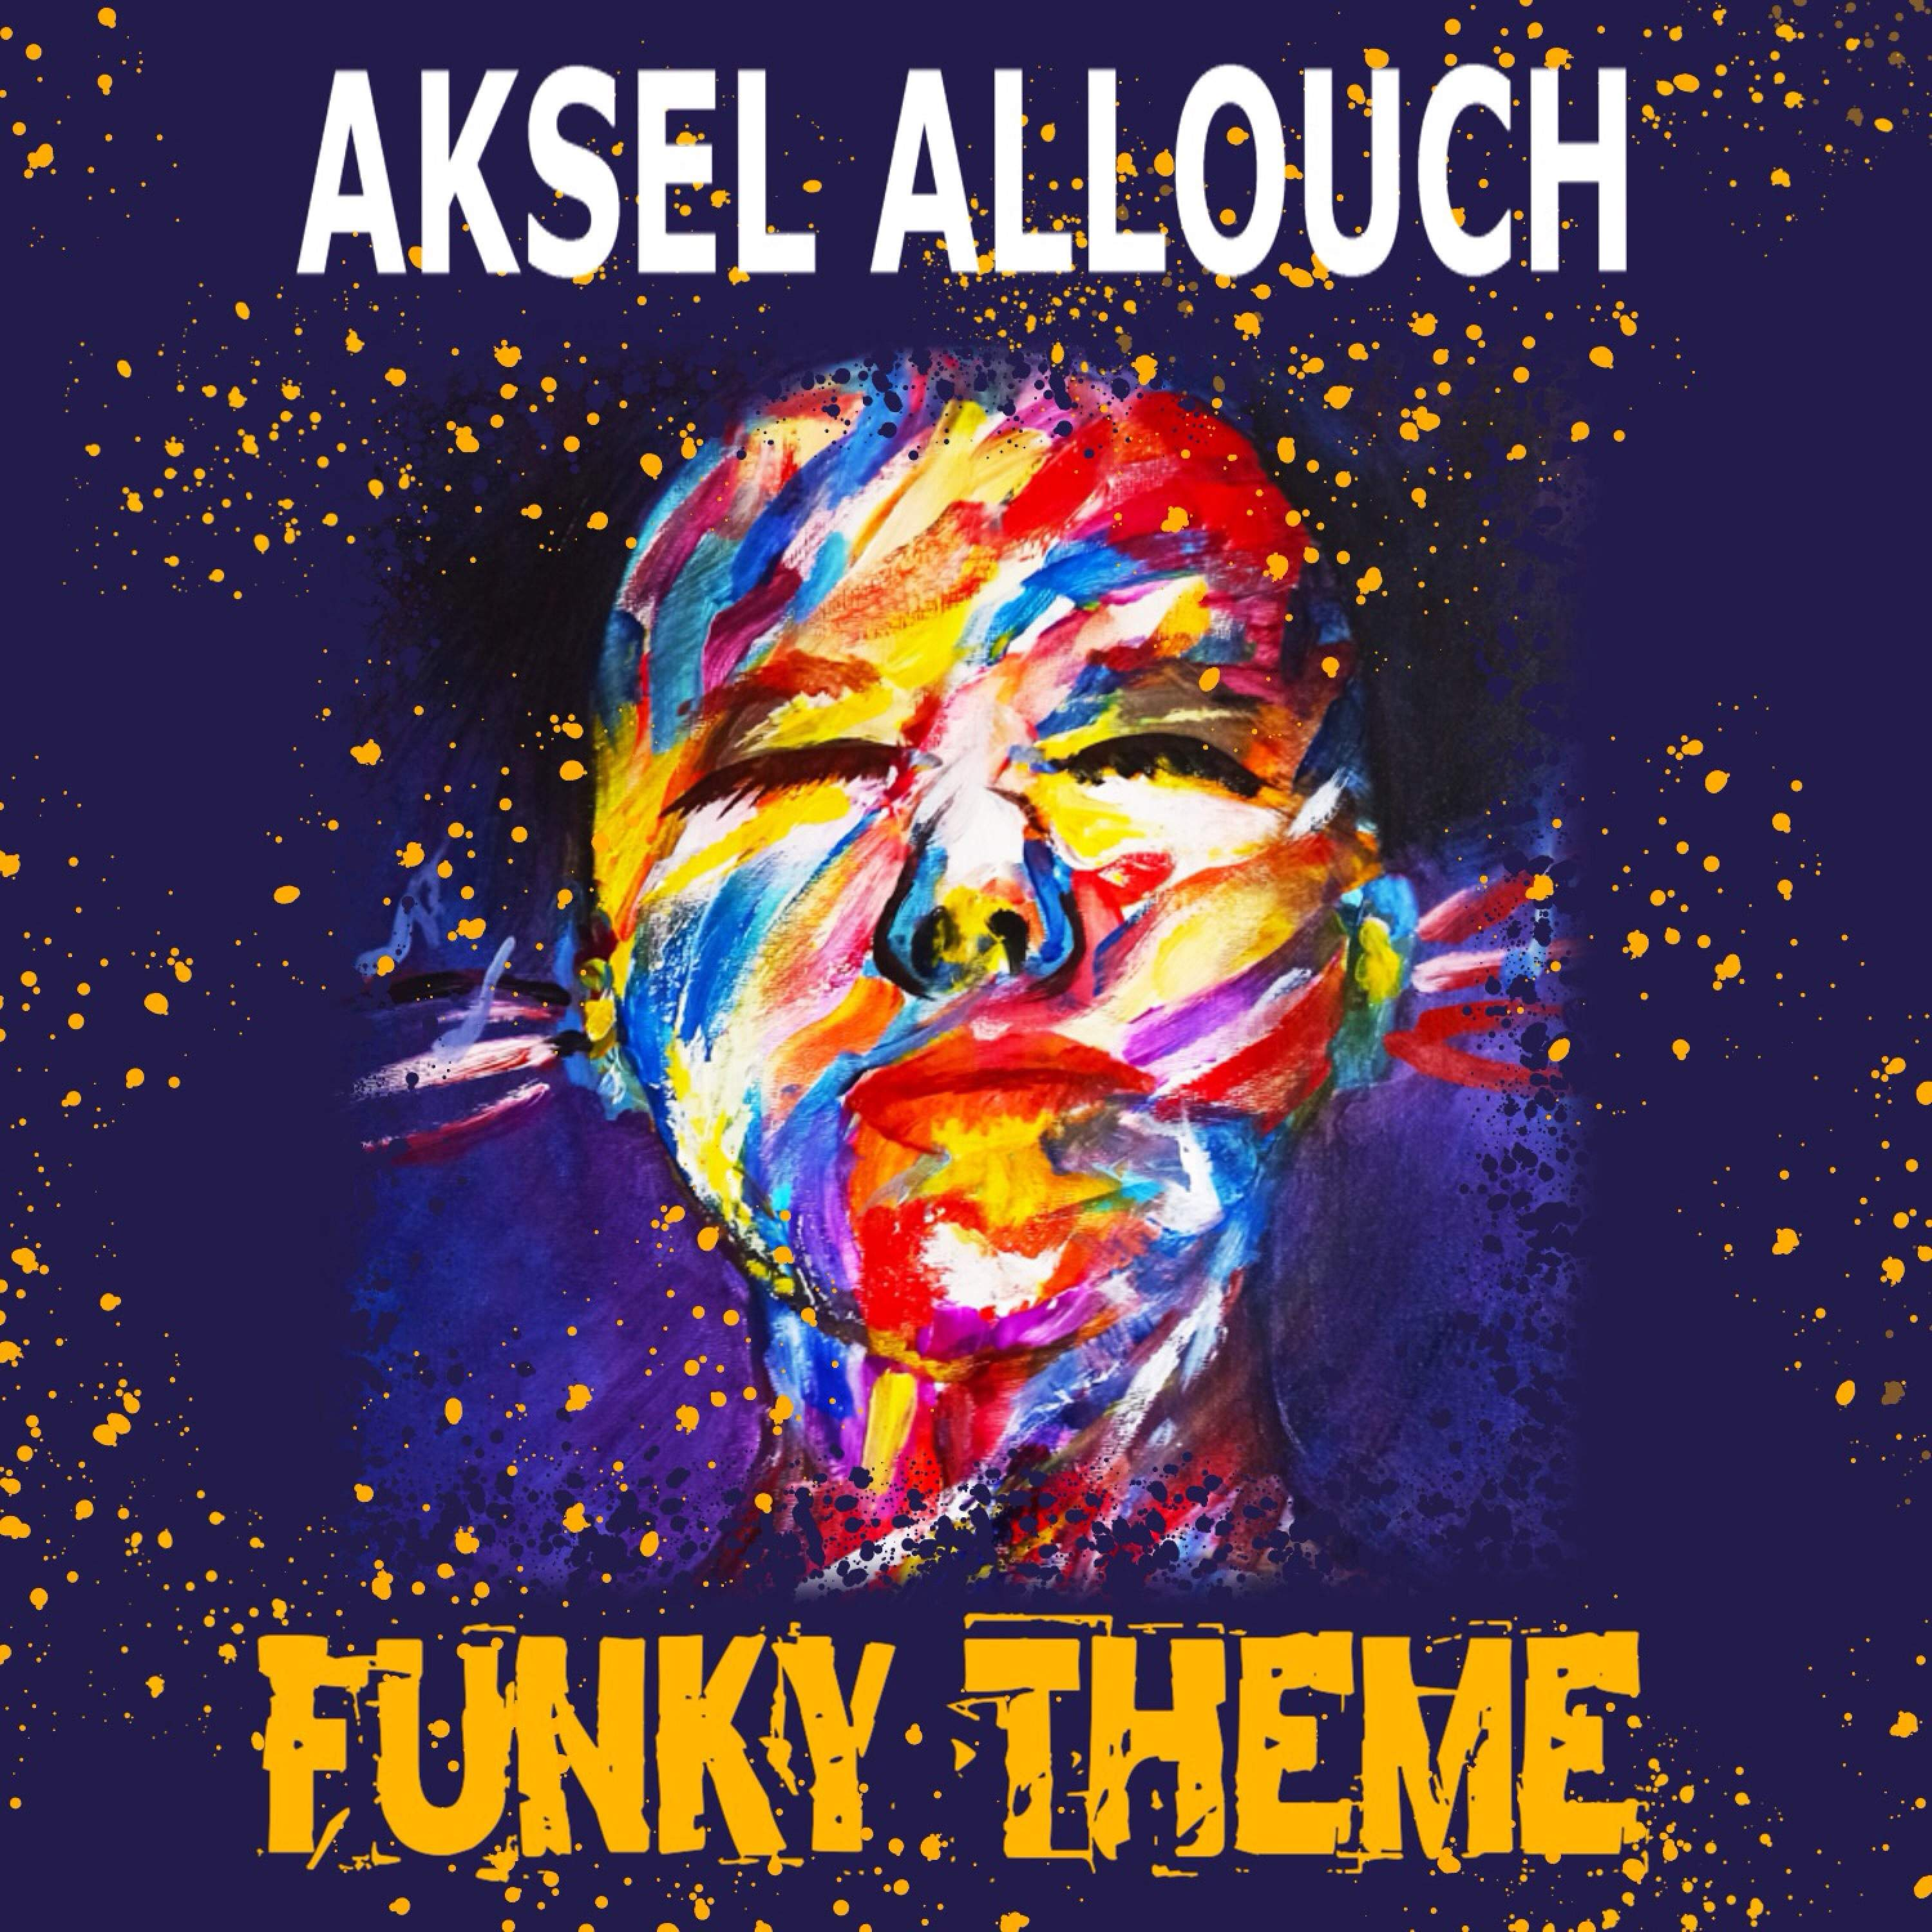 Embrace Rich and Dynamic Rock 'n Roll Imbued within Mediterranean Soul: Rising Artist Aksel Allouch Spins Magic with New Single